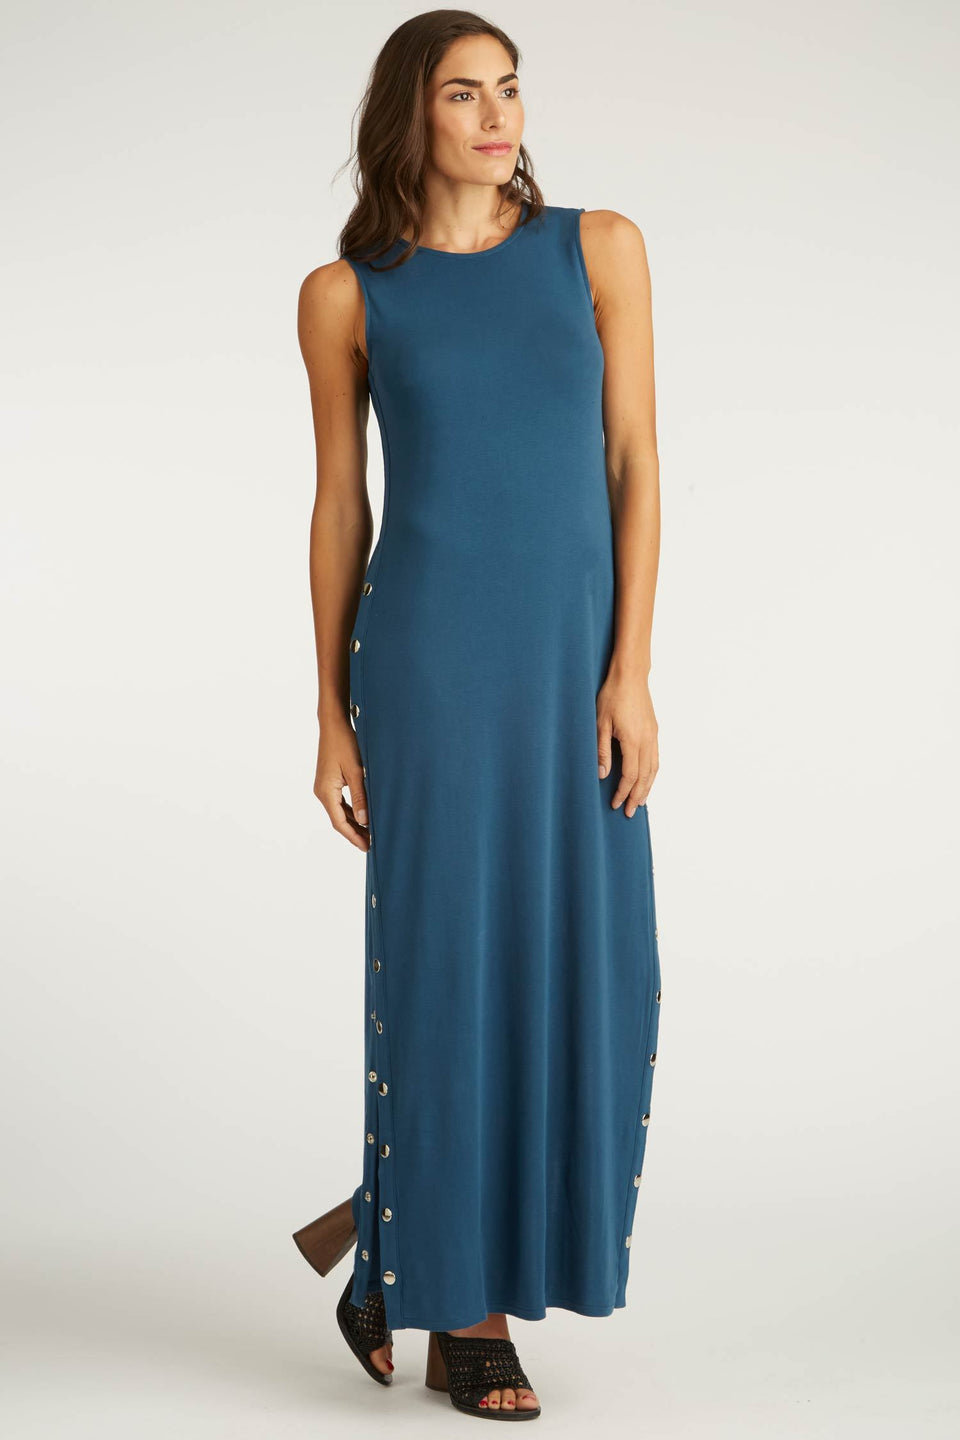 Snap Maxi Dress in Prussian Blue